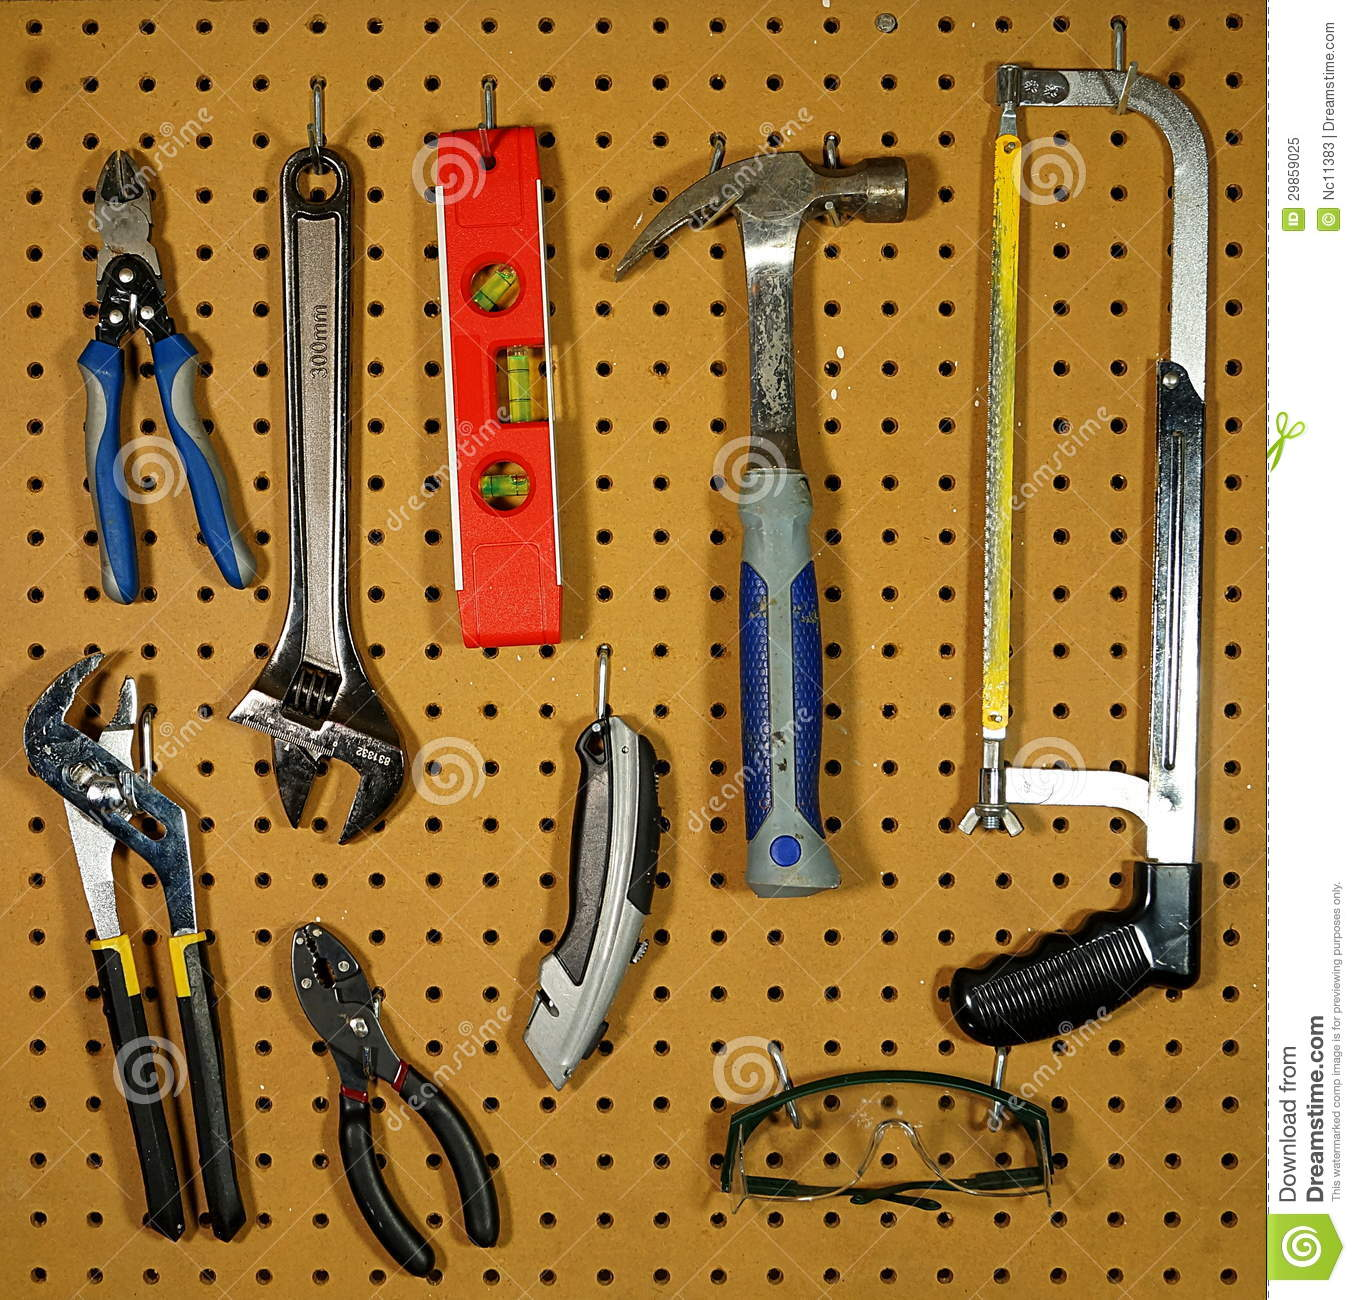 Uncategorized How To Hang Tools On A Pegboard tools pegboard stock images 97 photos hanging royalty free photo